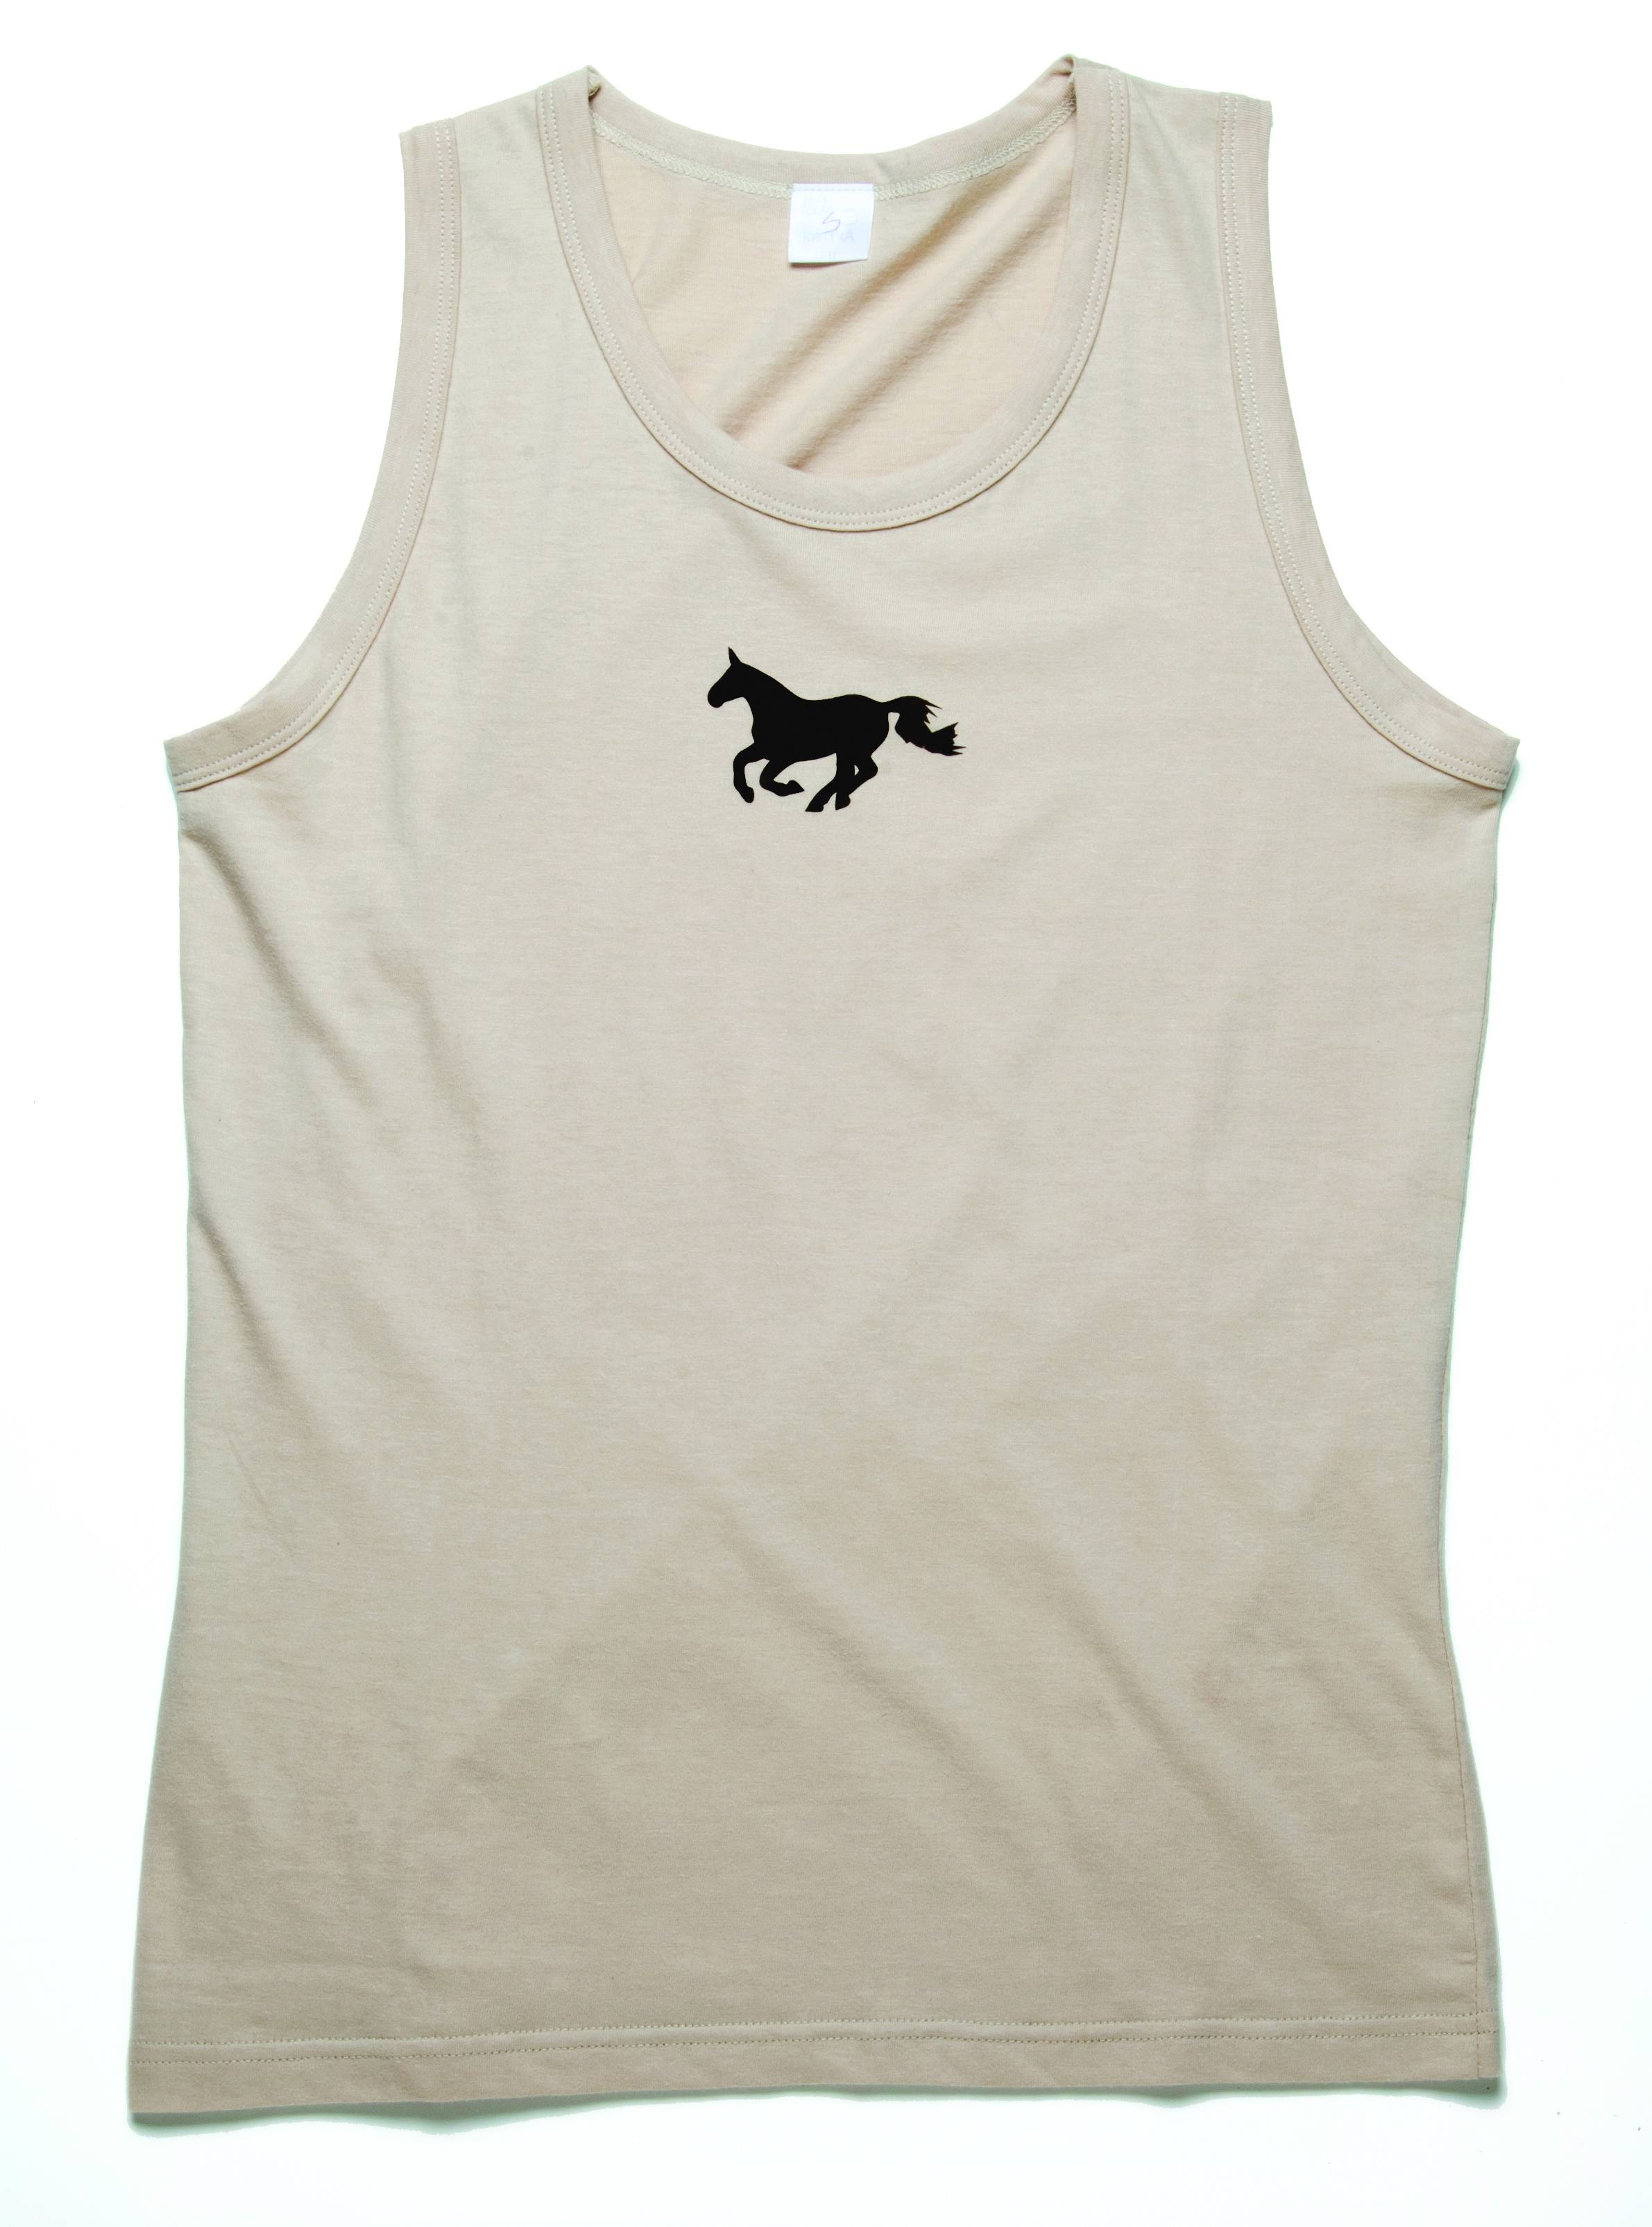 Kelley Horses N Chocolate Tank Top - Ladies